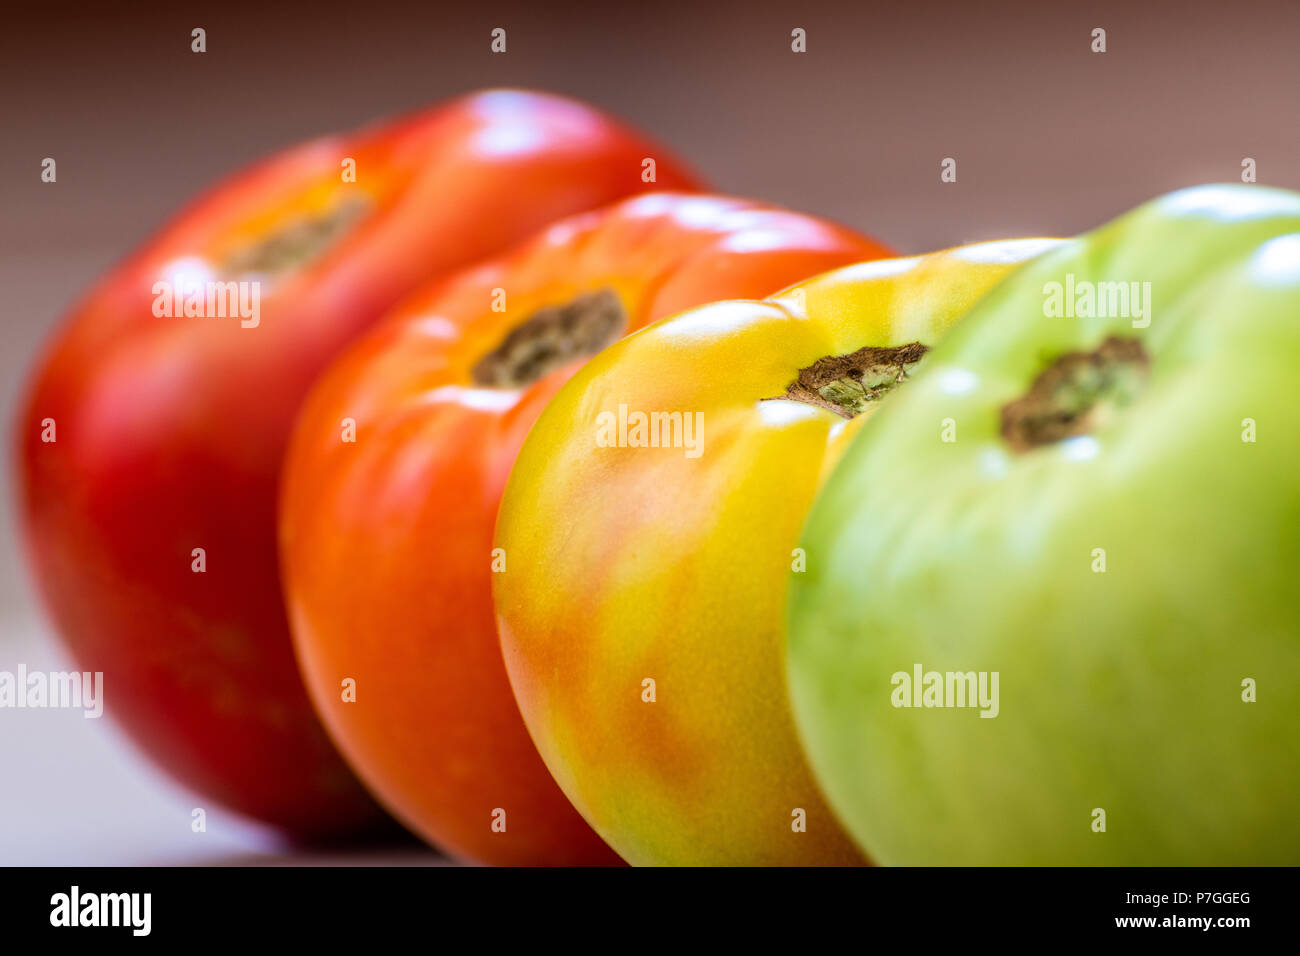 Tomatoes at different ripening stages. Concept. Focus is on Turning tomato. Stages are Green then Turning then Light Red then Red. - Stock Image